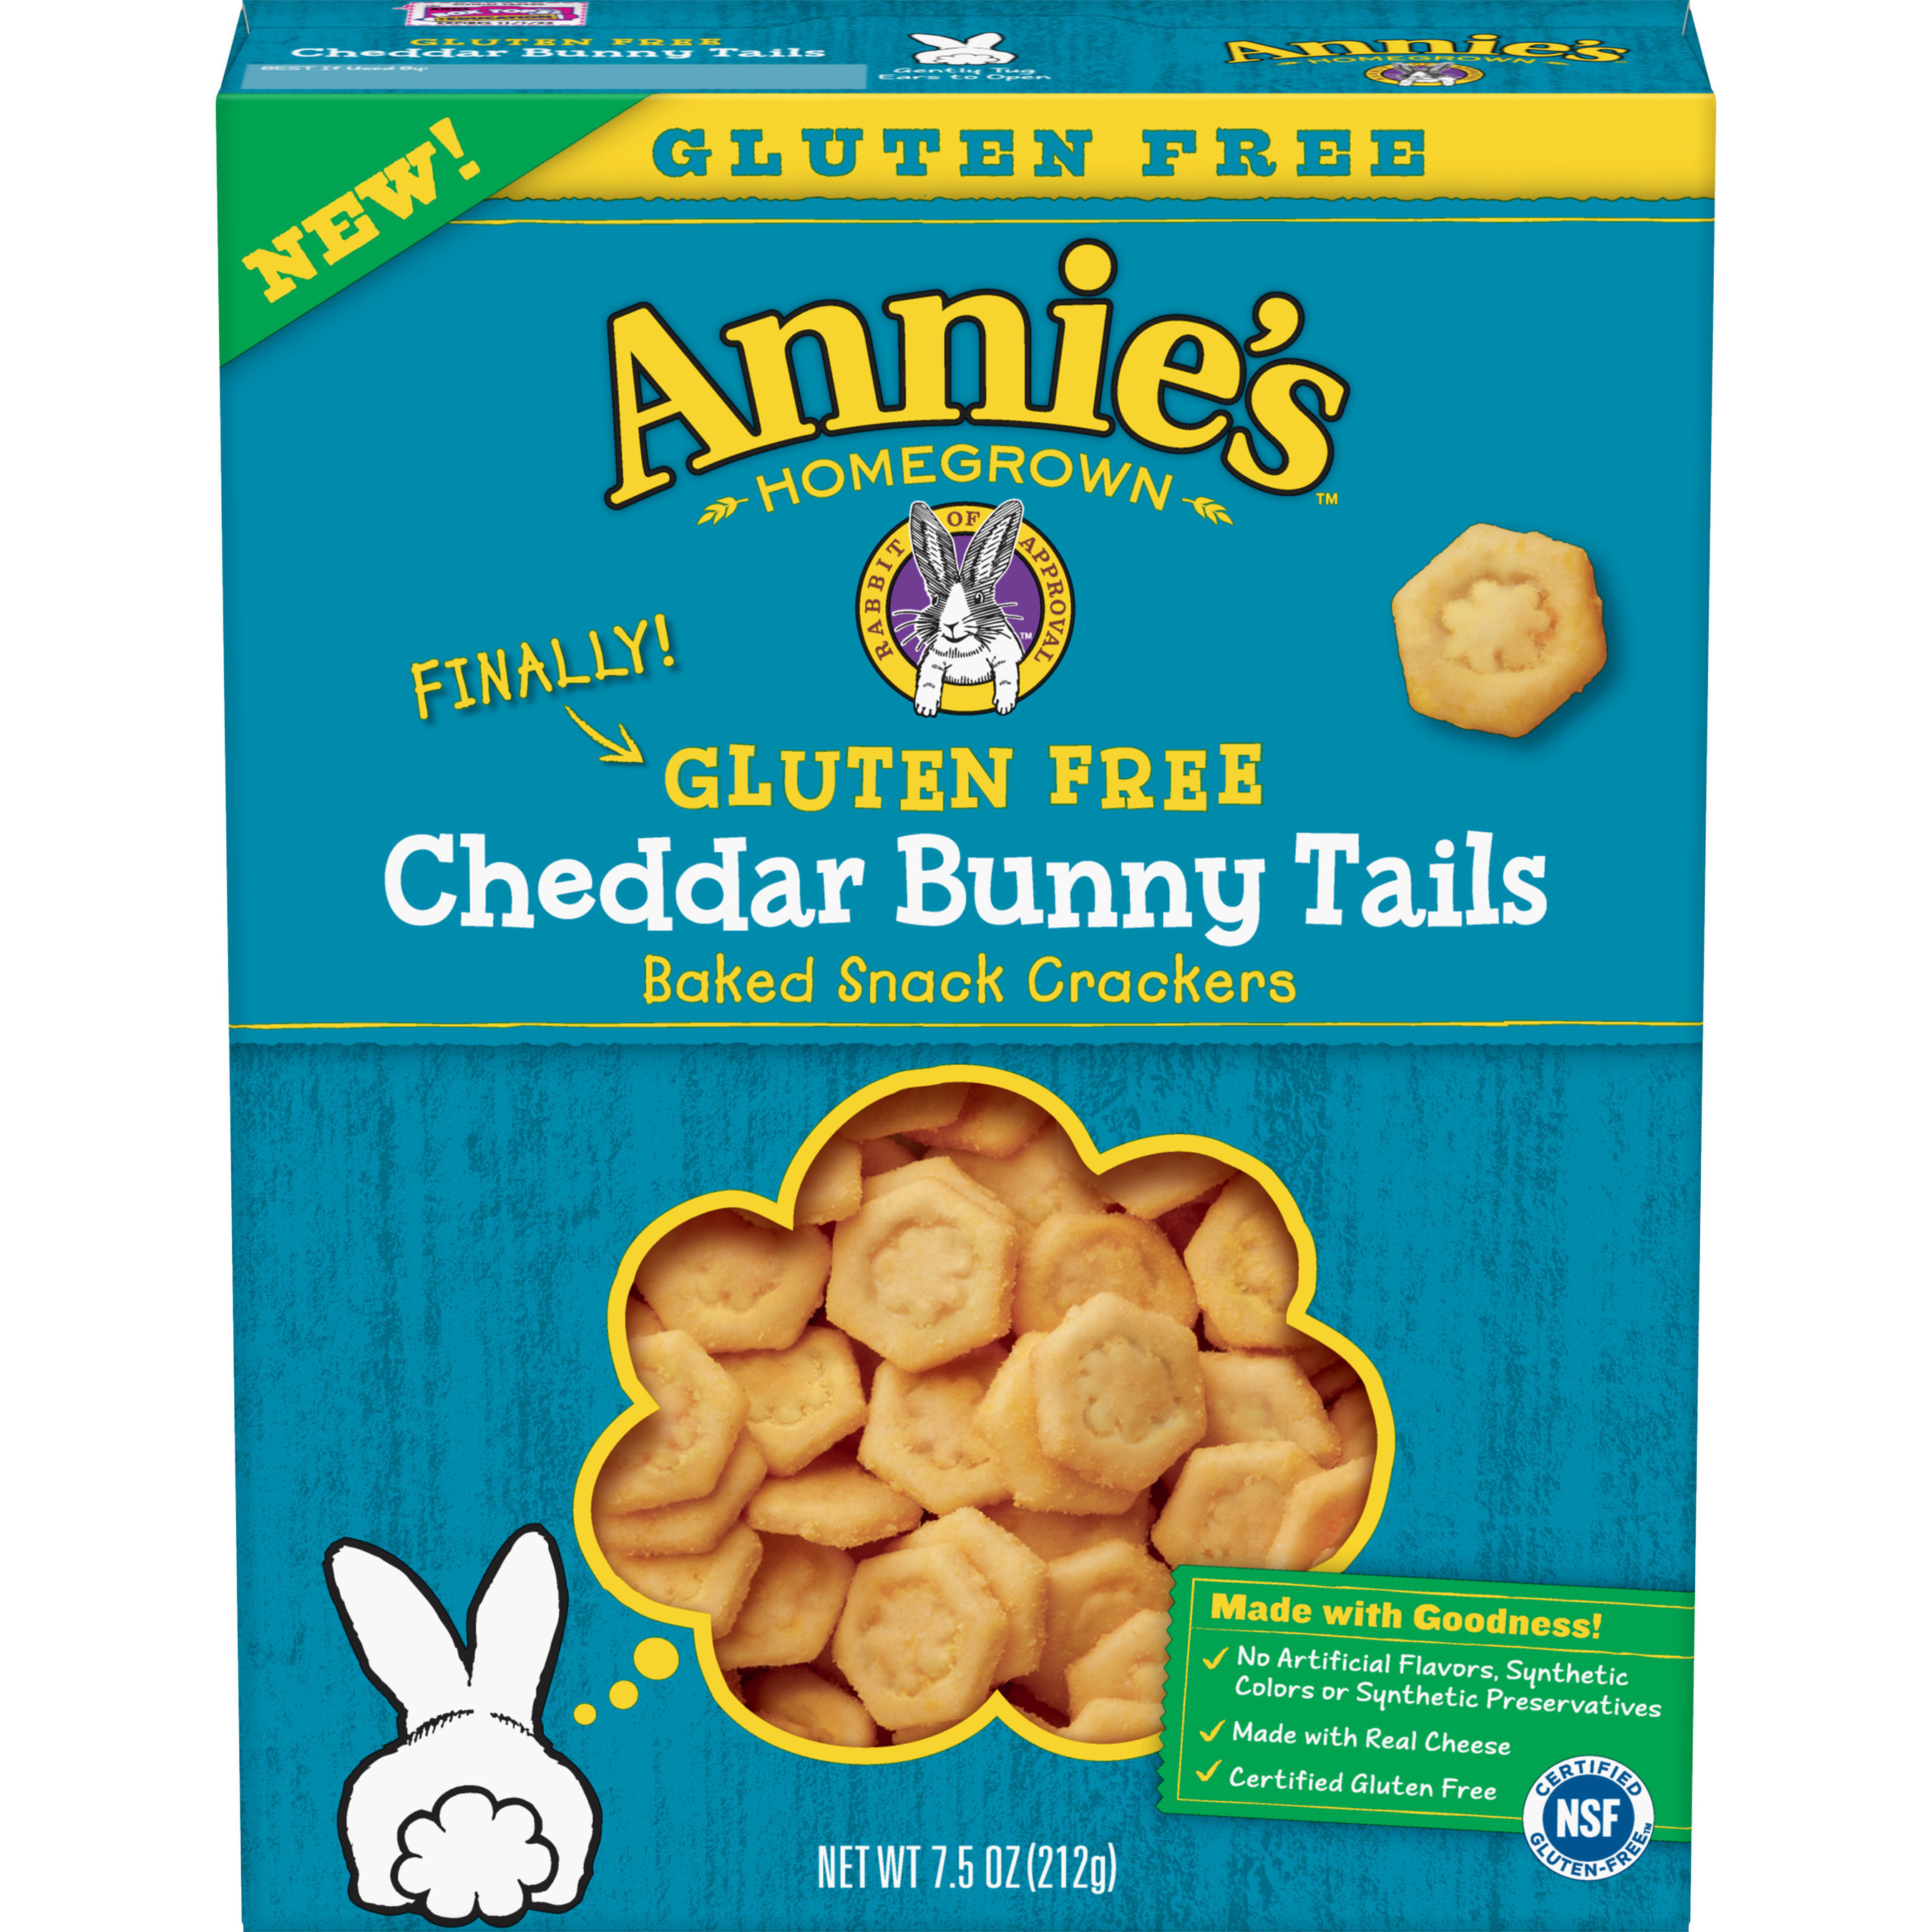 Annies-GF-Bunny-Tails